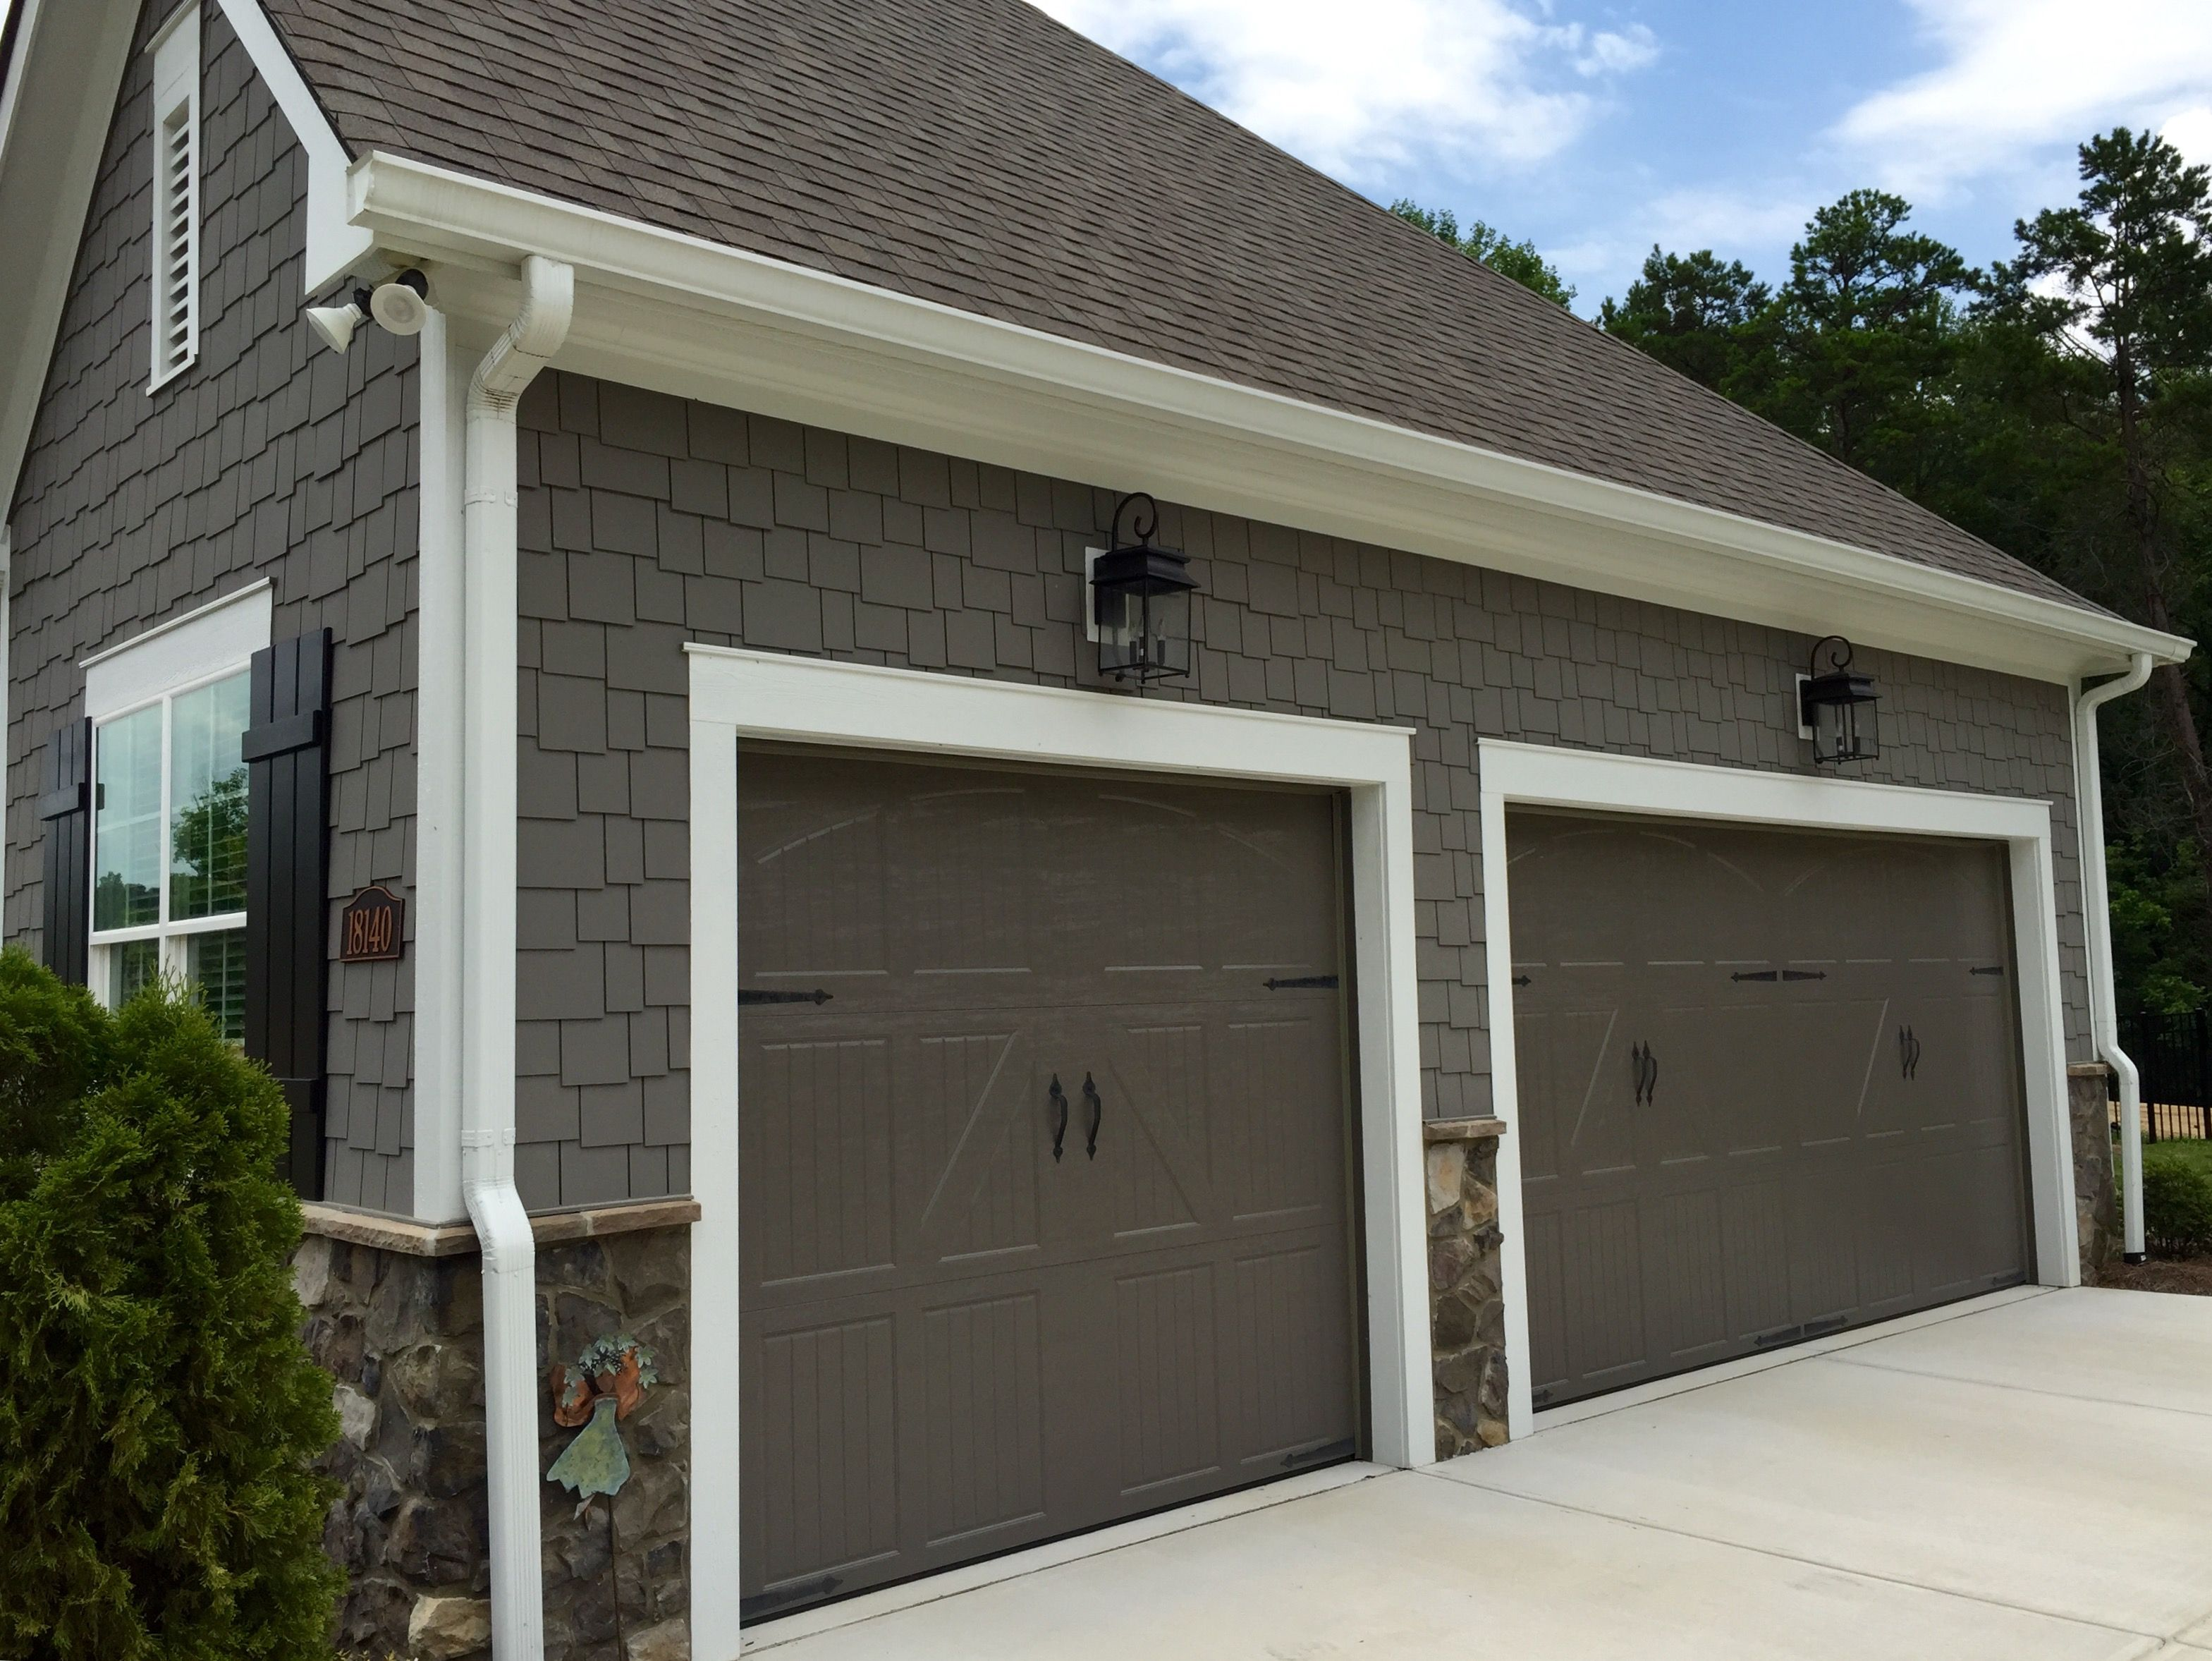 How to paint fascia boards - Metals